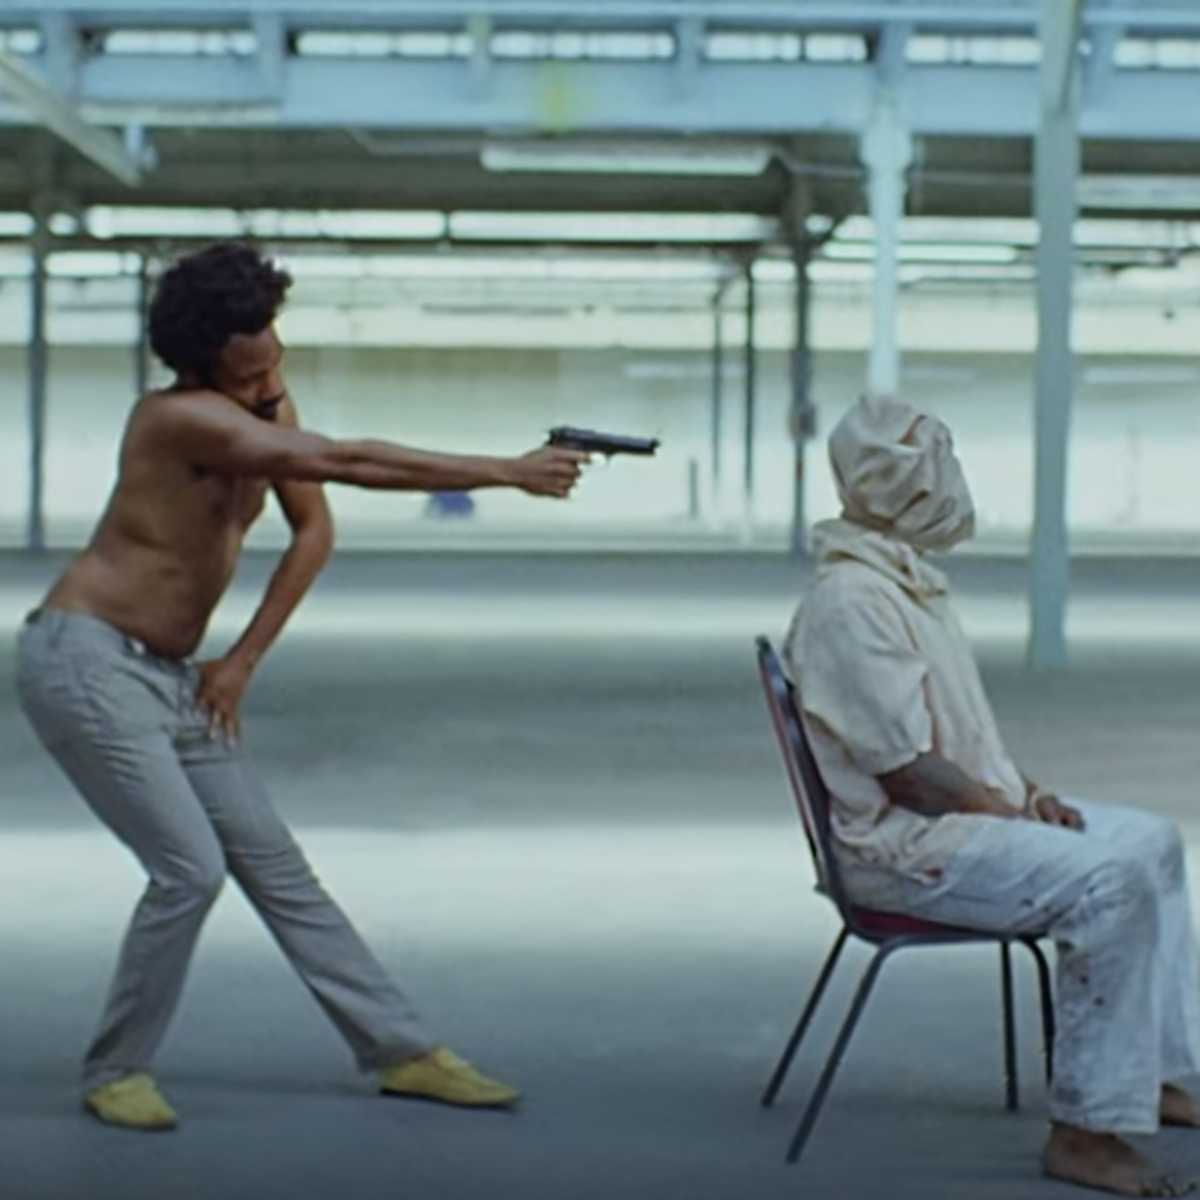 Childish Gambino: This is America uses music and dance to